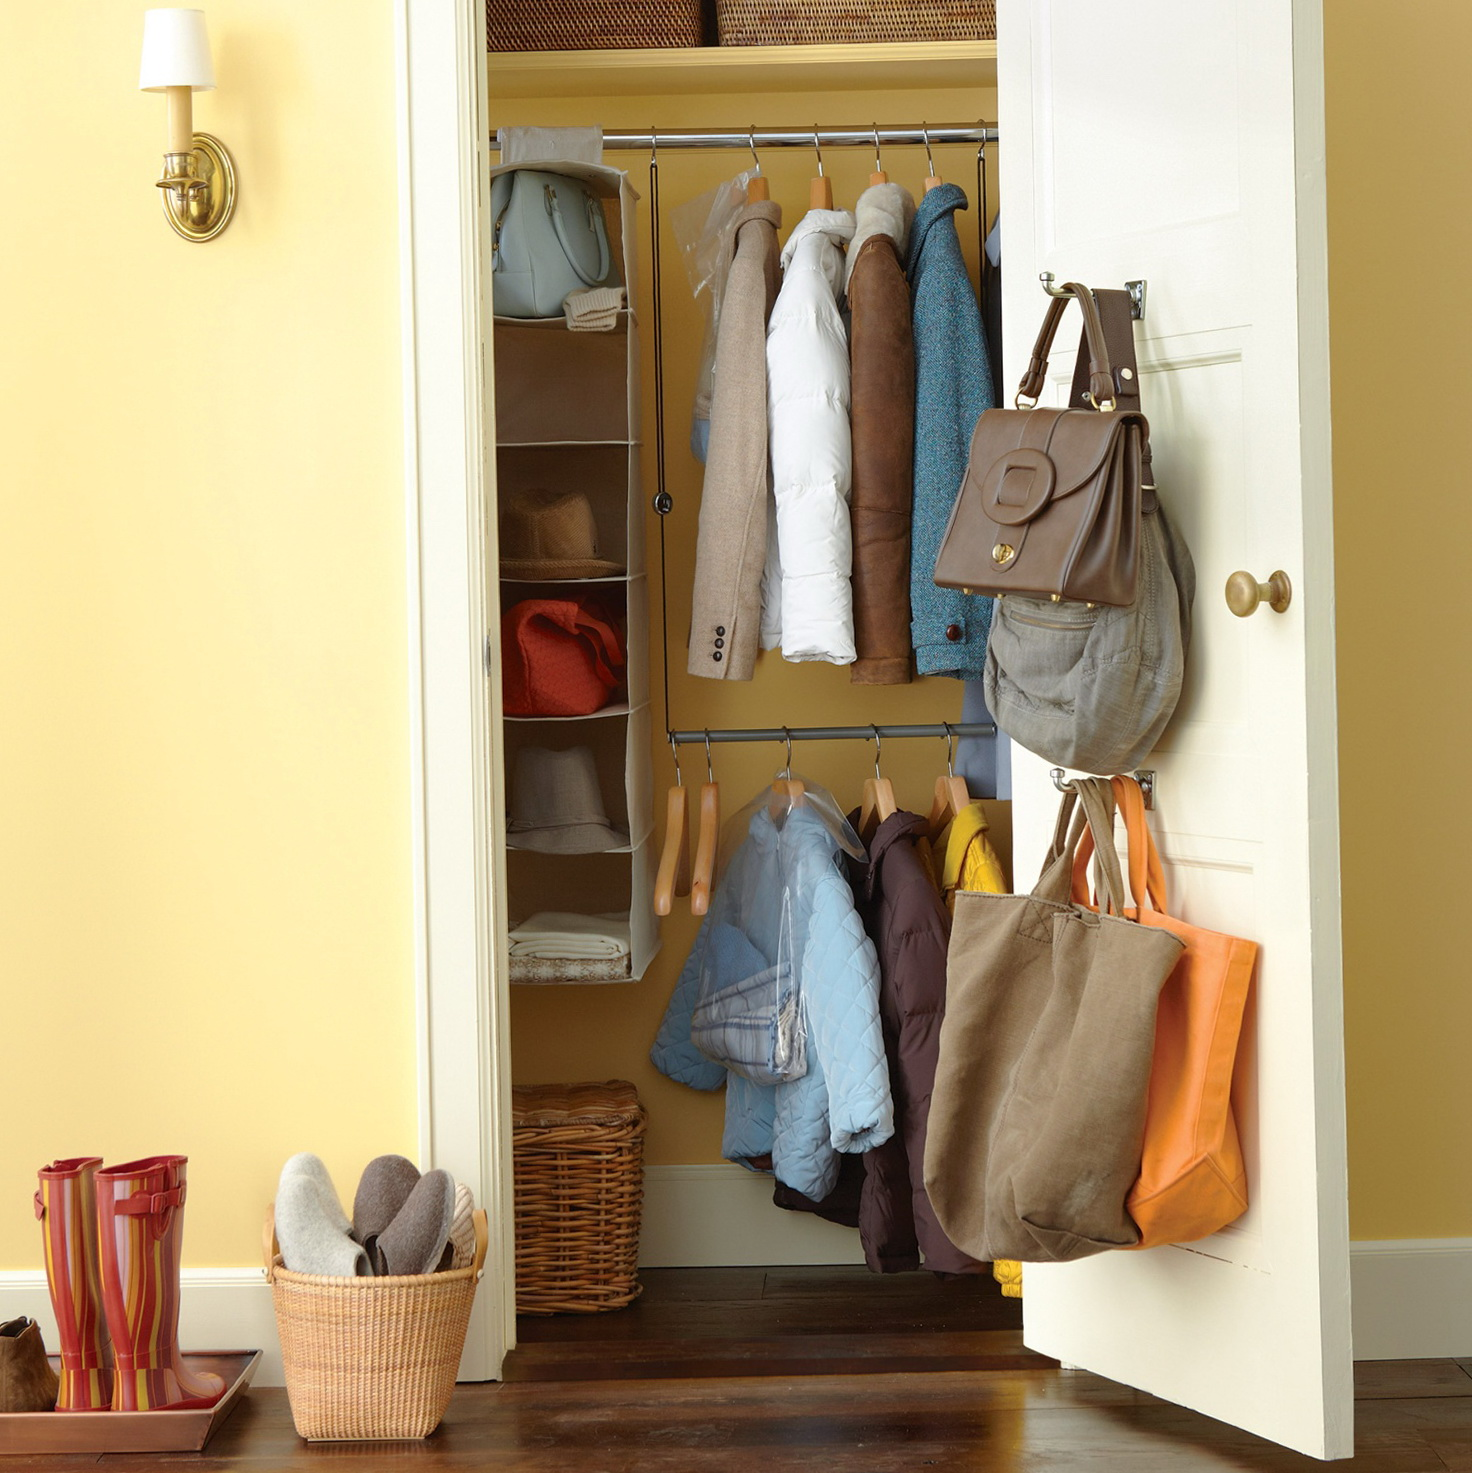 Front Hall Closet Organization Ideas Part - 32: Front Hall Closet Organization Ideas